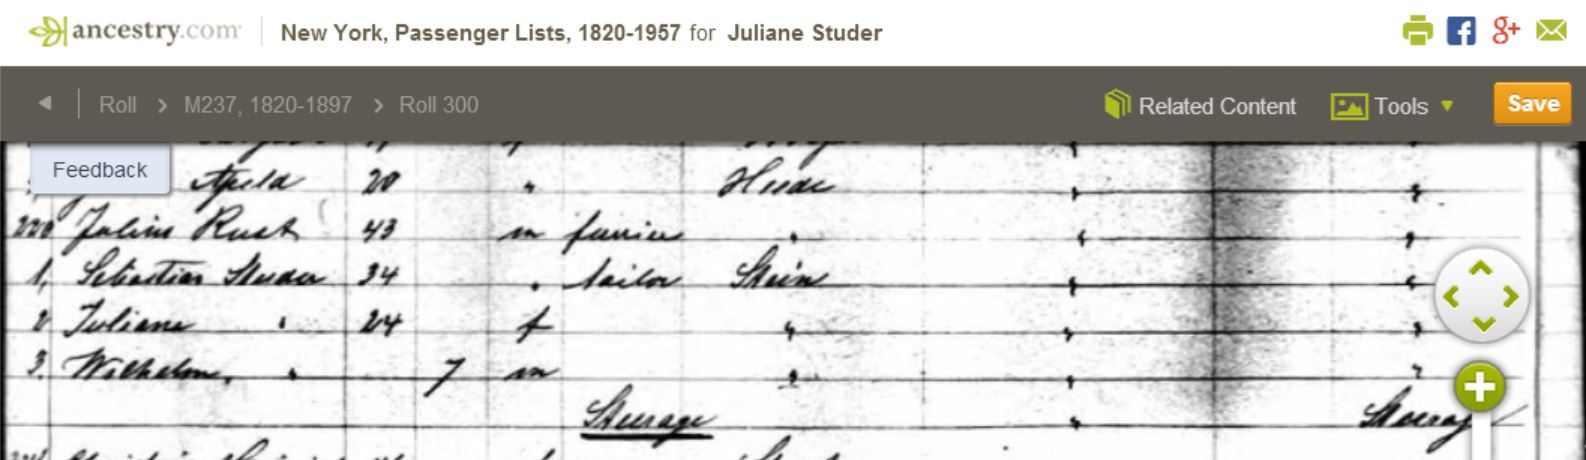 1868 Aug 31 Studer NY Passenger List German Genealogy research case cracked; patron cannot see it